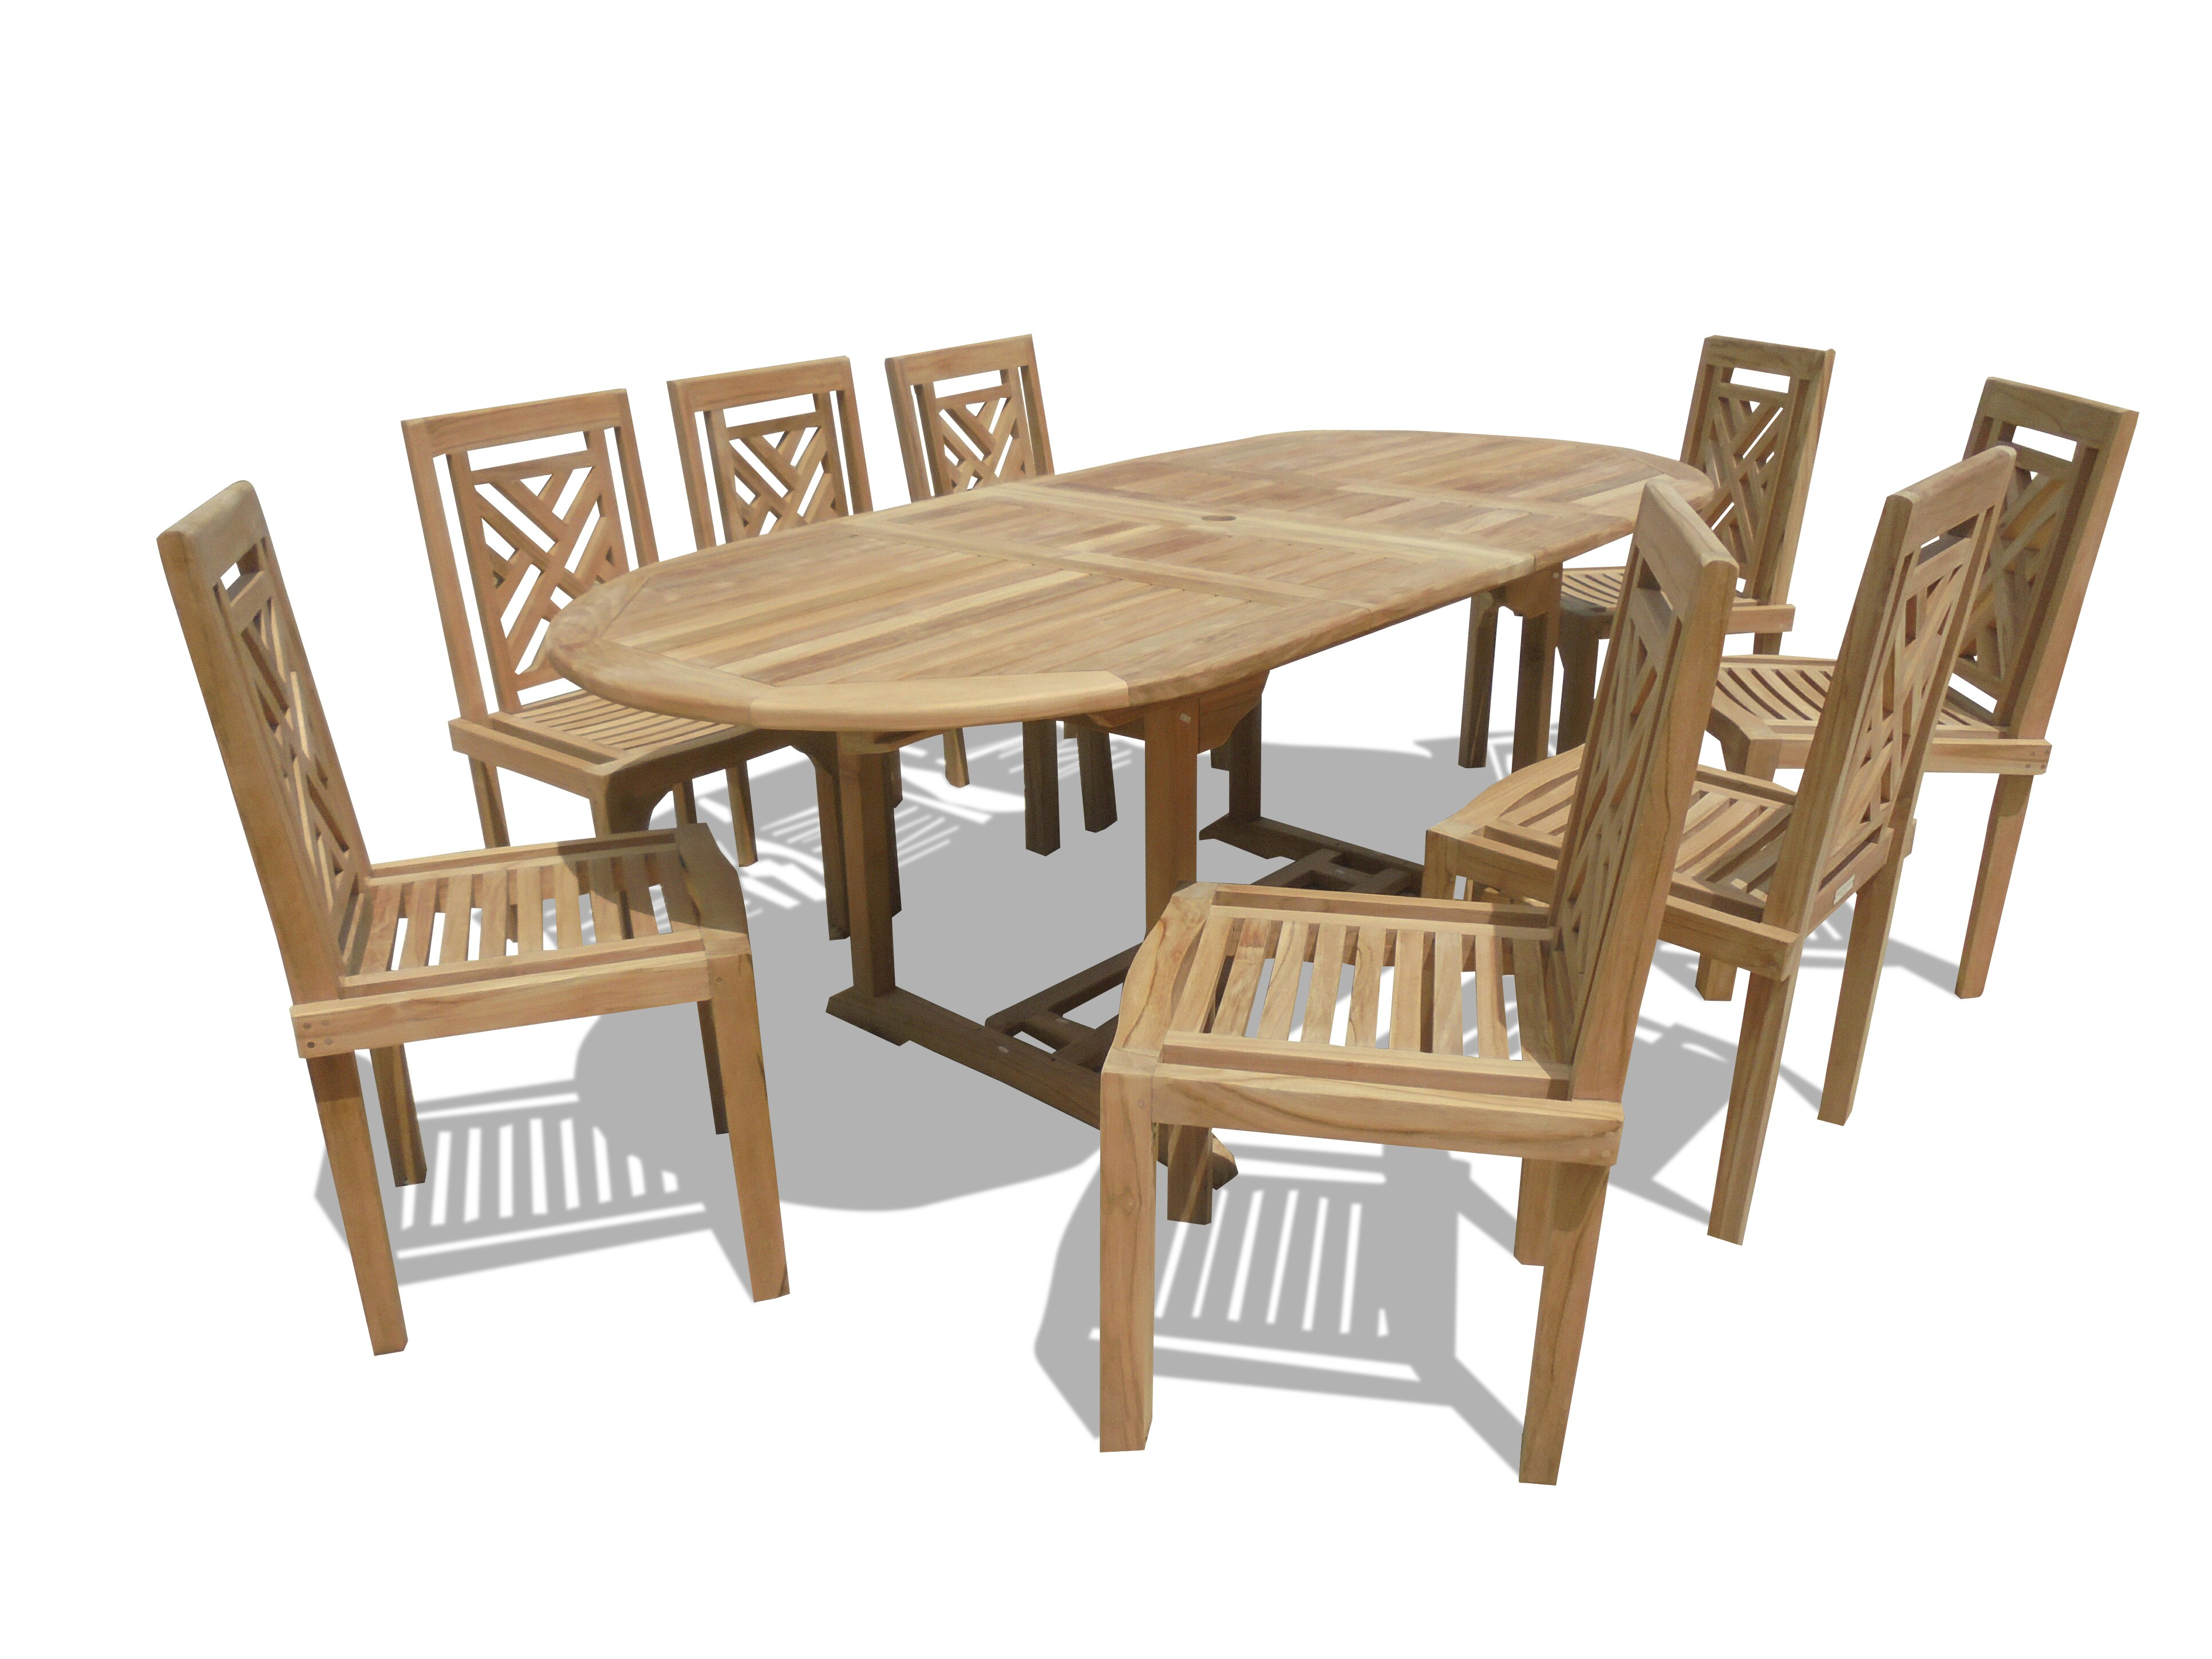 "Buckingham 82"" x 39"" Double Leaf Oval Extension Teak Table W/8 Chippendale Stacking Chairs...seats 8"